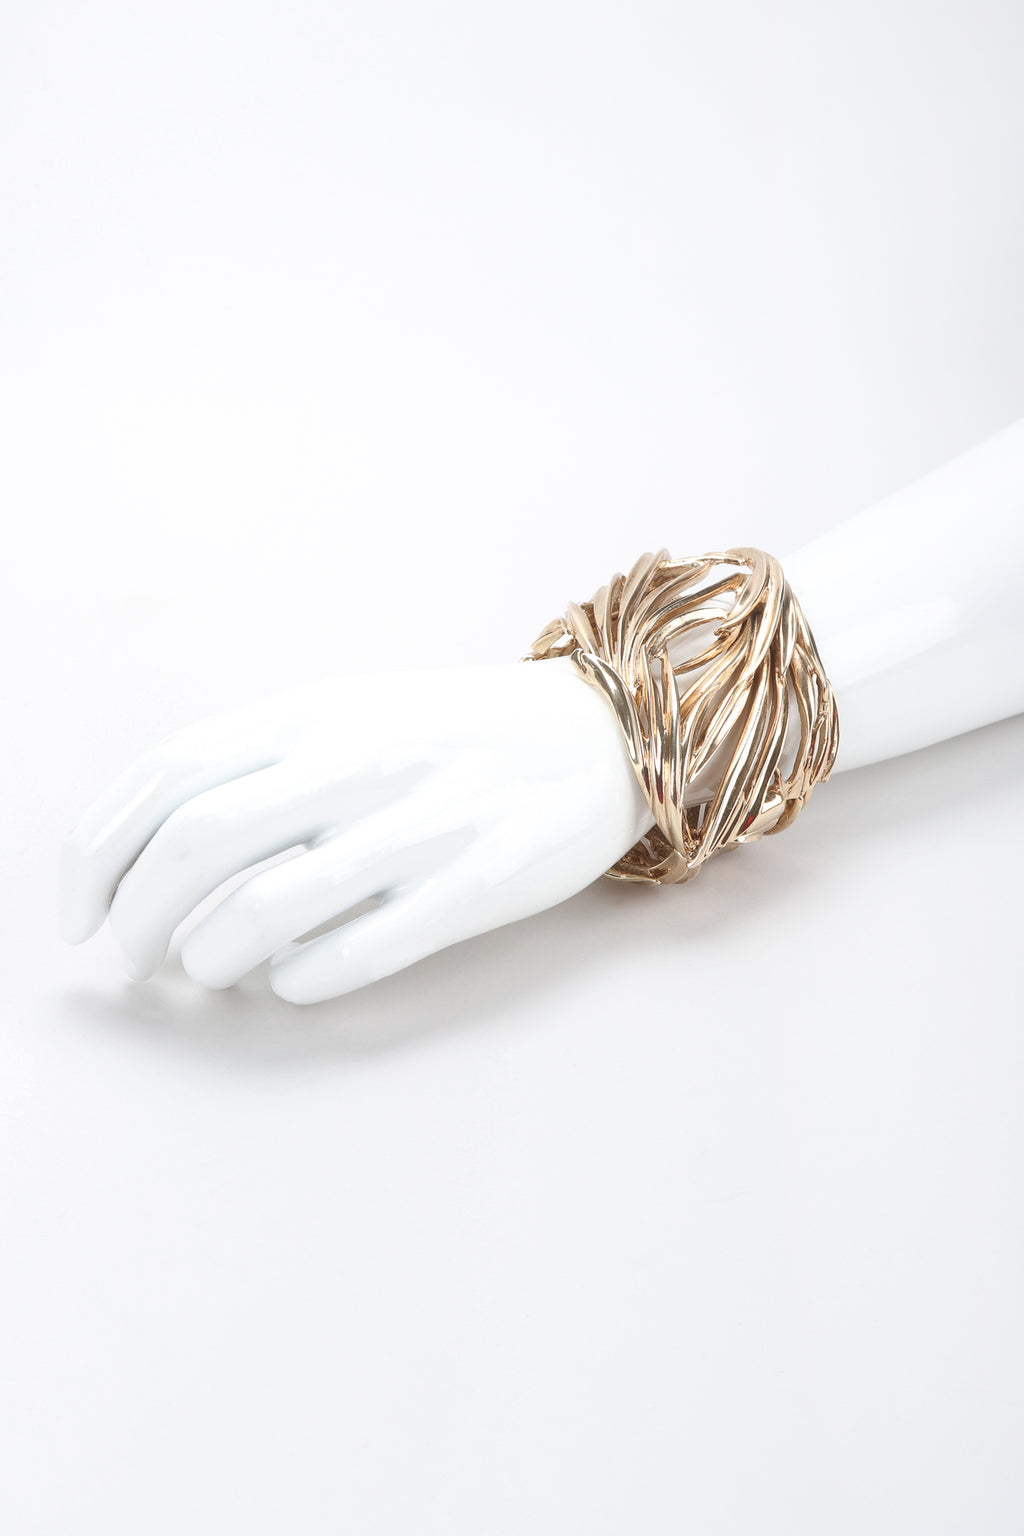 Recess Designer Consignment Vintage Oscar de la Renta Gold Majesty Palm Cuff Bracelet Los Angeles Resale